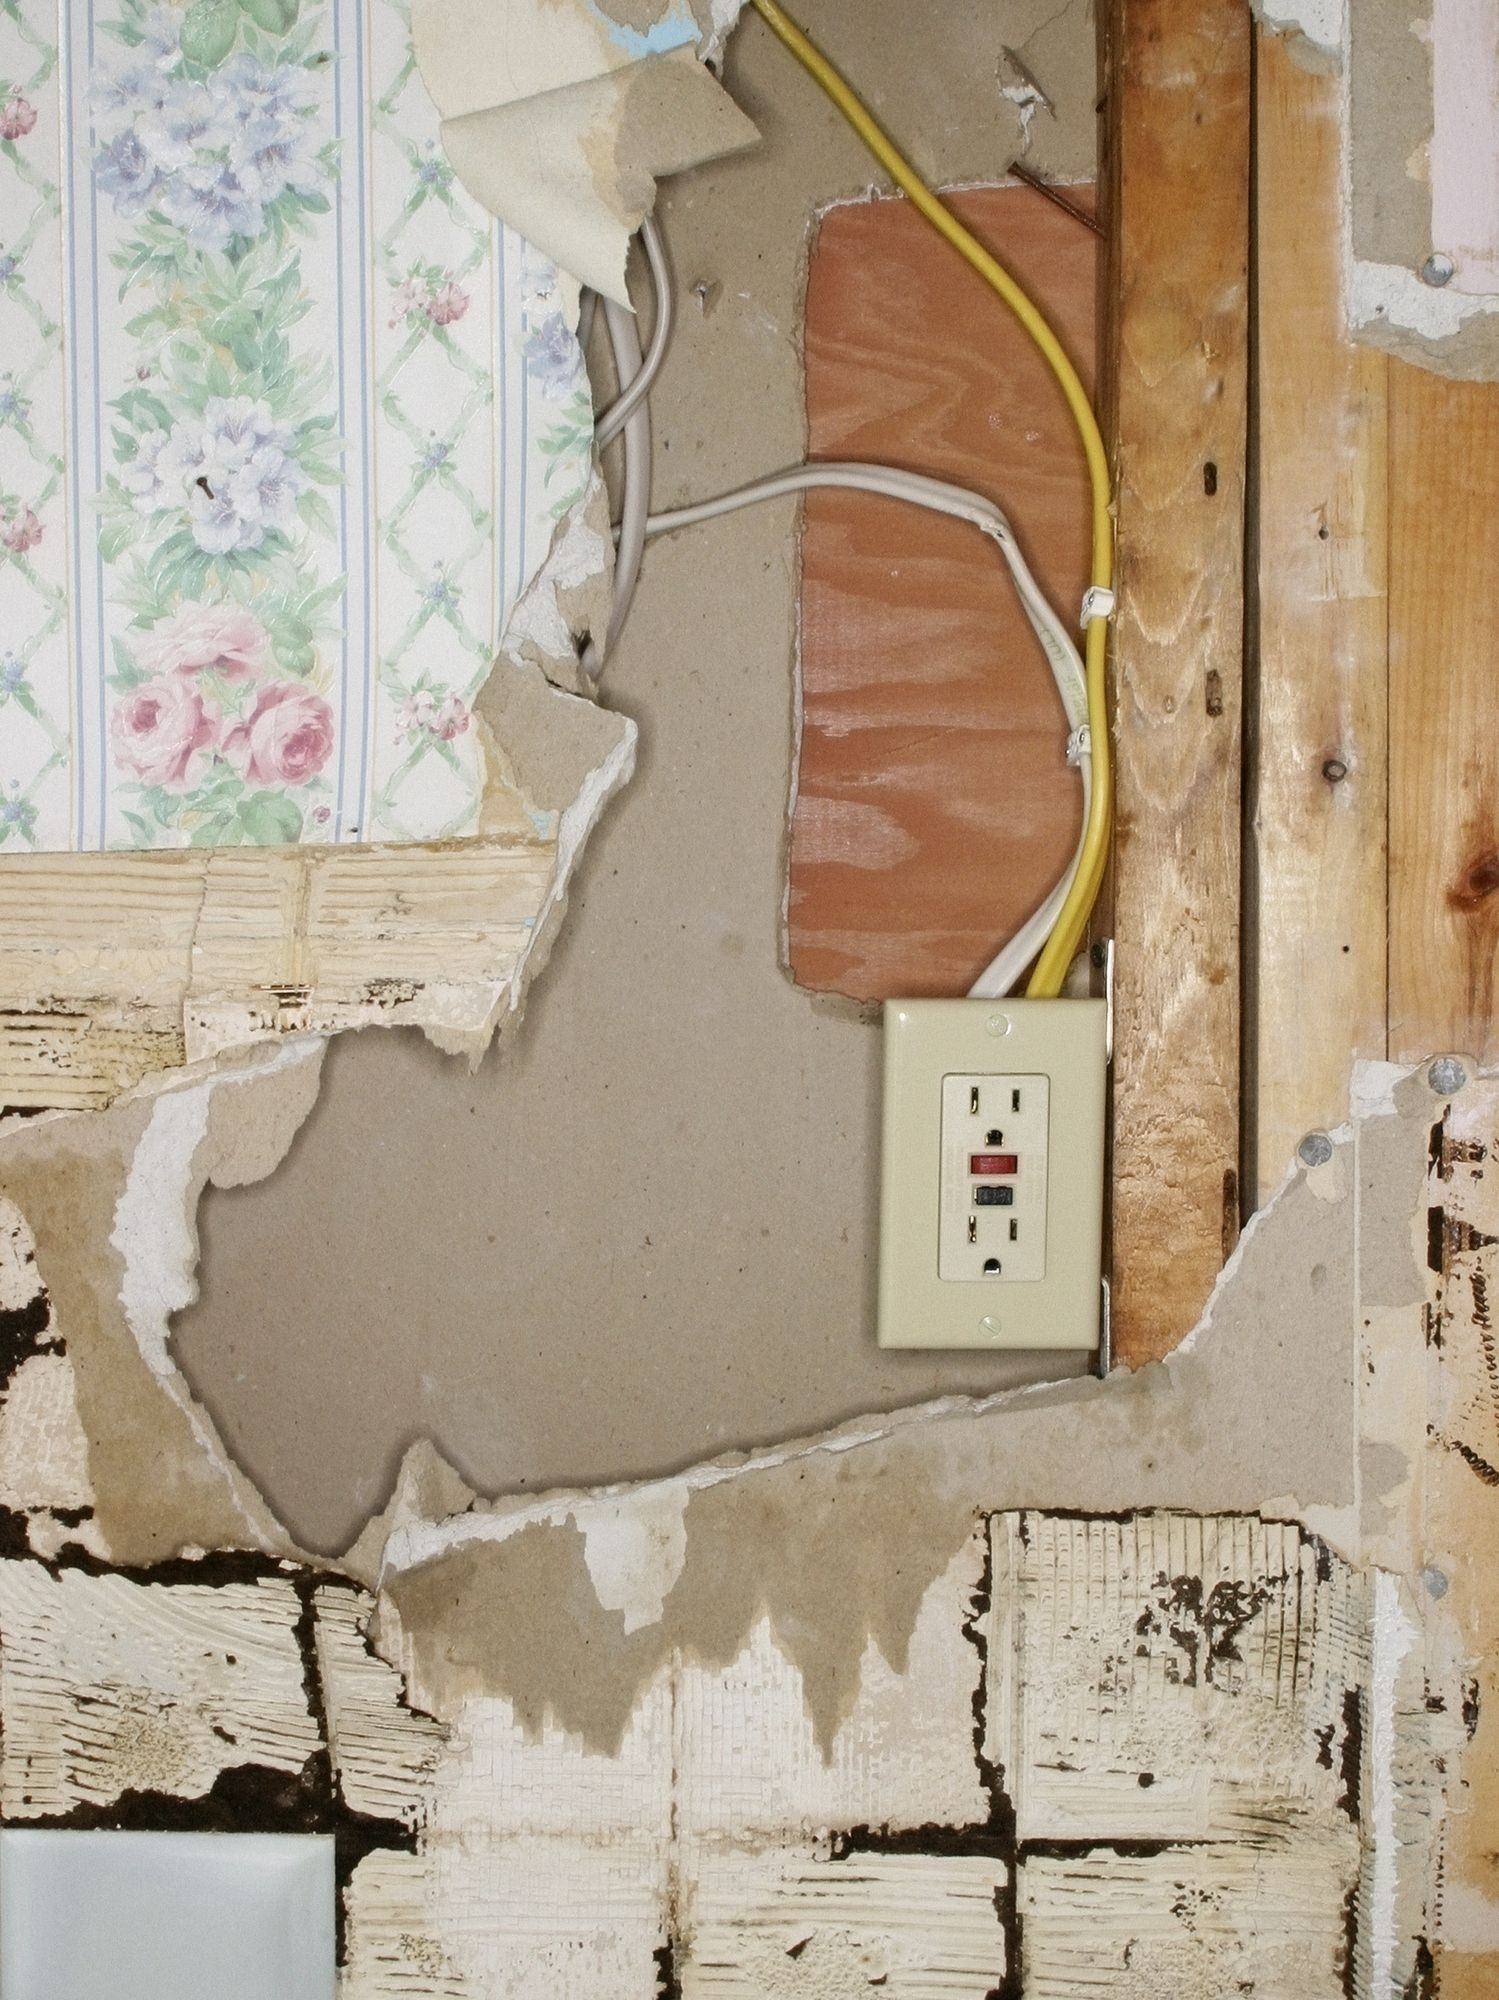 Electrical Wiring In The Home Replaced Switch Outlet But Is My Old House Safe